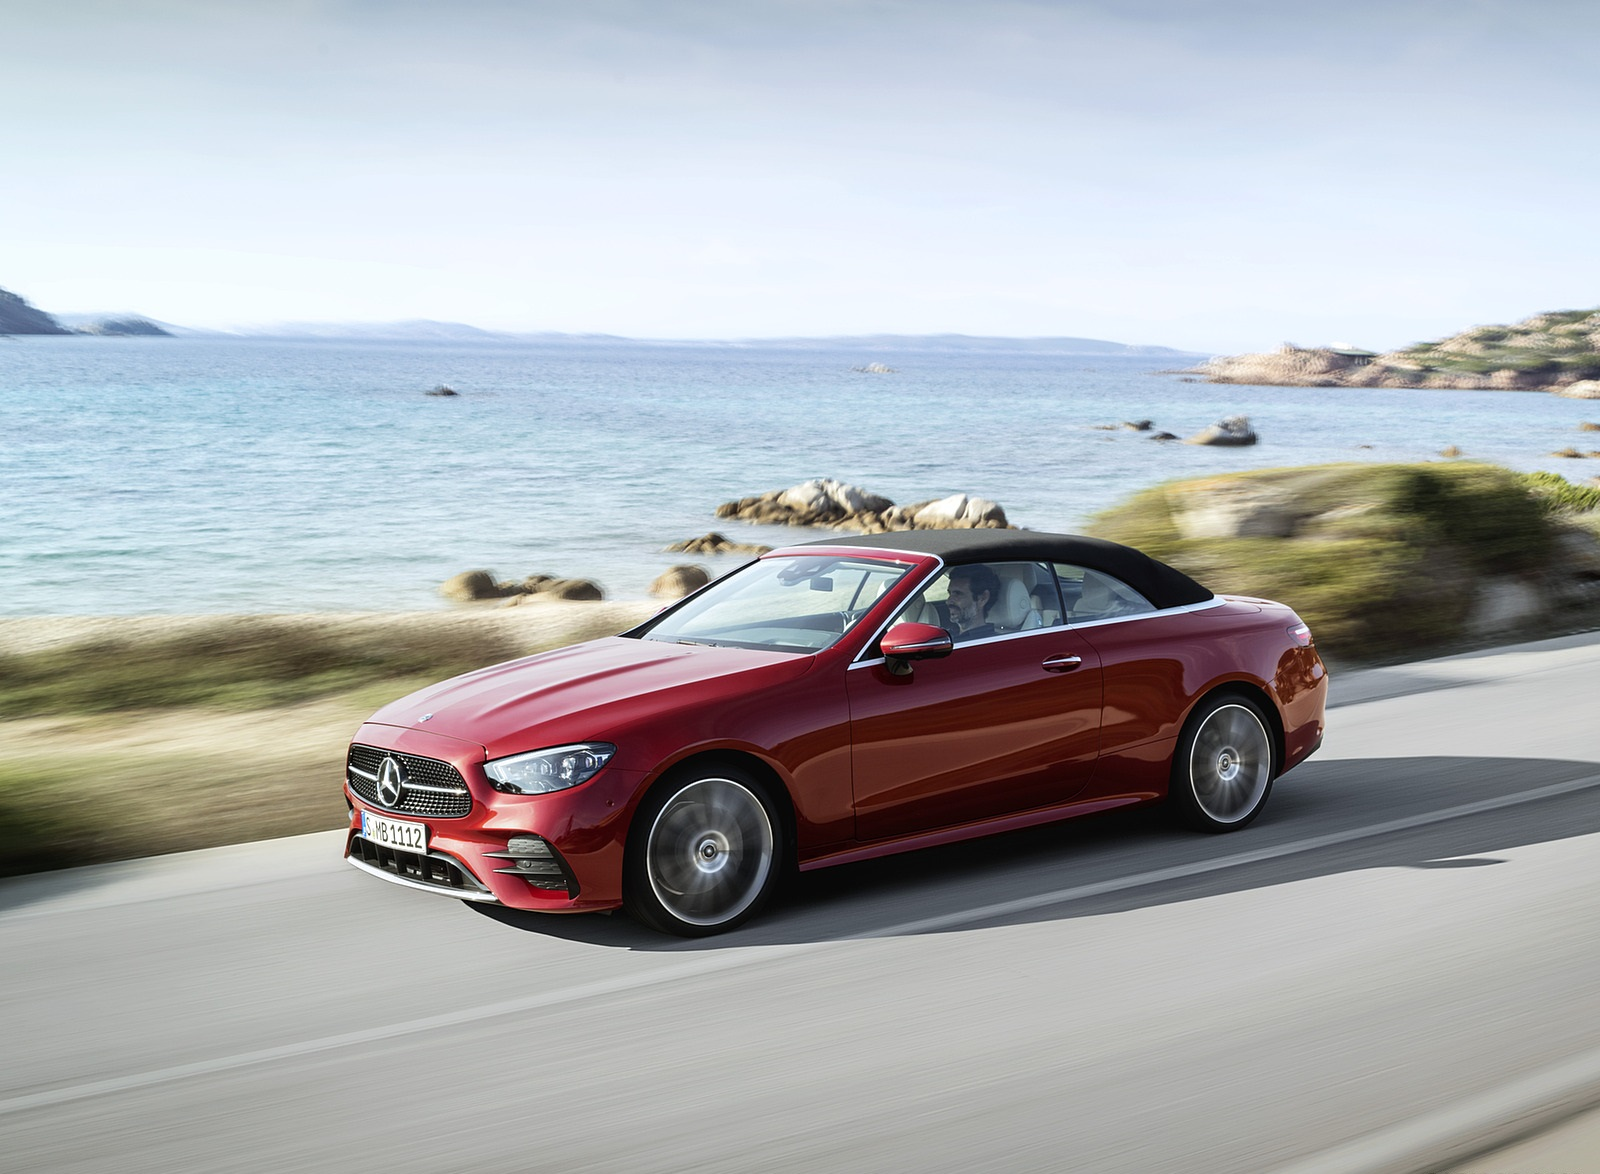 2021 Mercedes-Benz E 450 4MATIC Cabriolet AMG Line (Color: Designo Hyacinth Red Metallic) Front Three-Quarter Wallpapers (4)